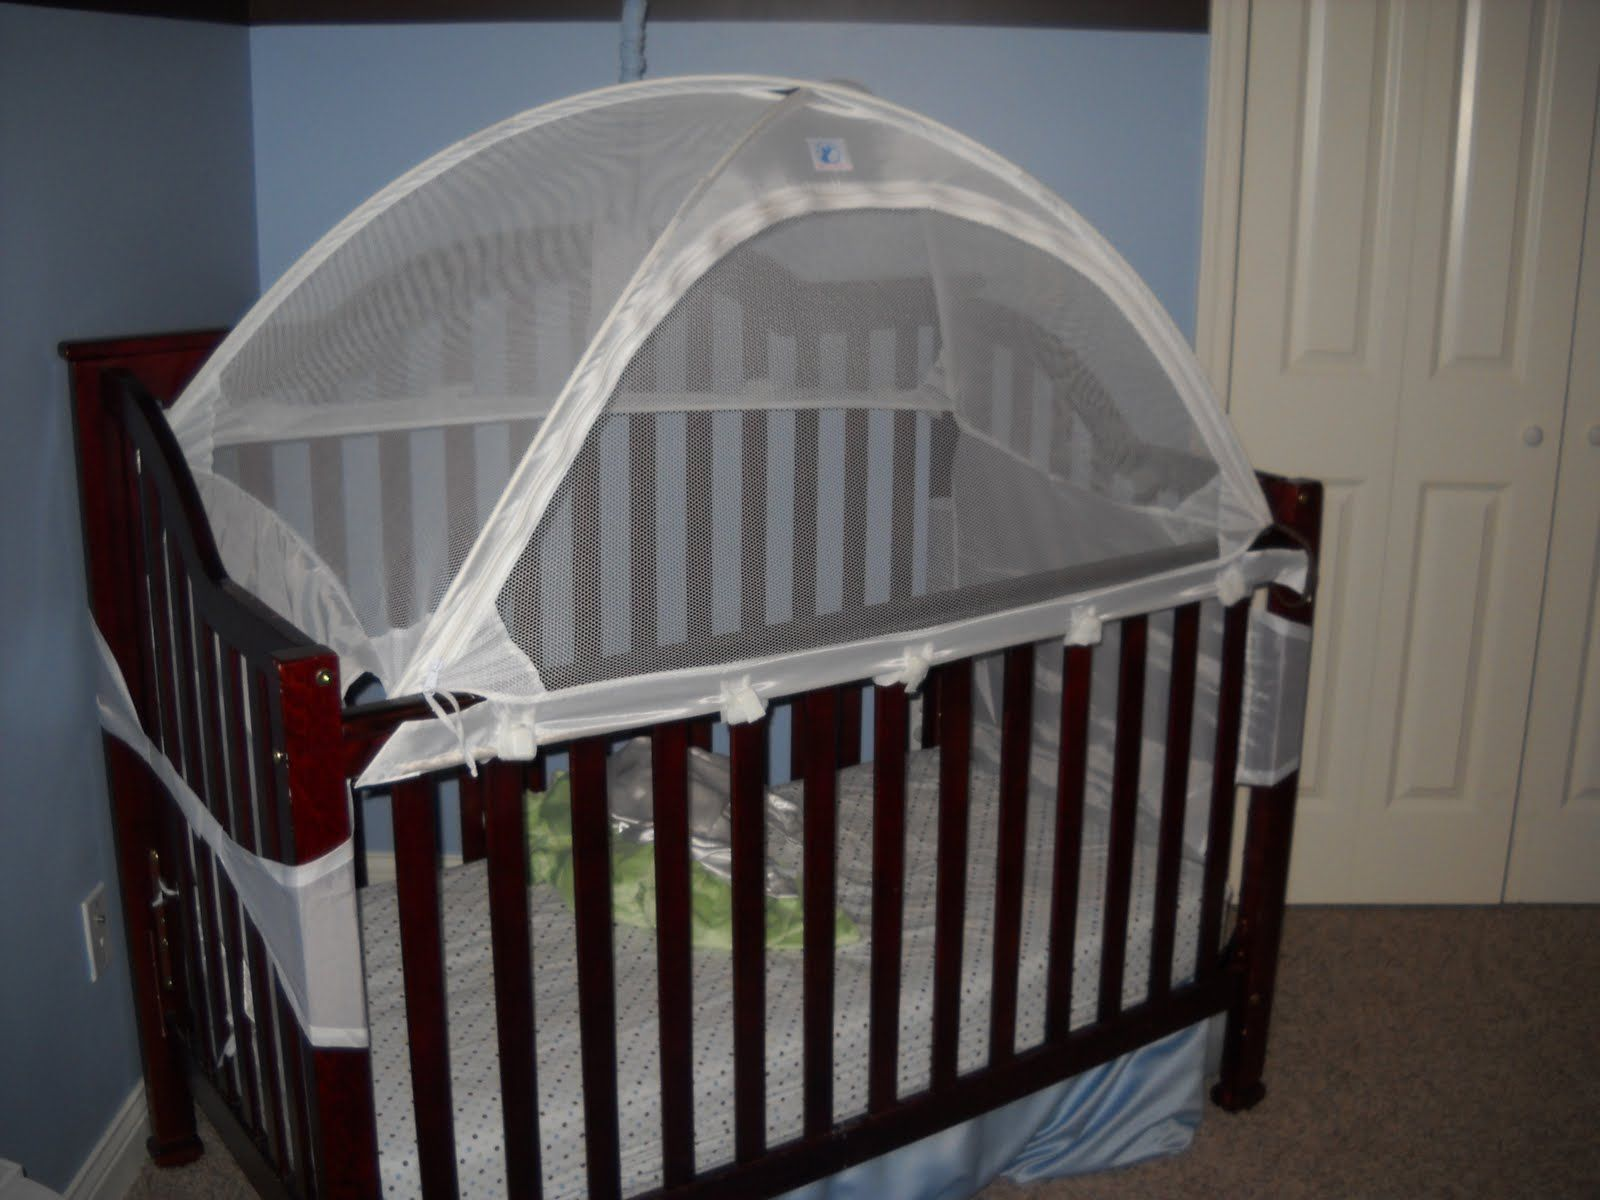 Crib alternatives for babies - Brown Wooden Baby Crib With Small Black Round Pattern White Mattress Accessories And Transparent Style White